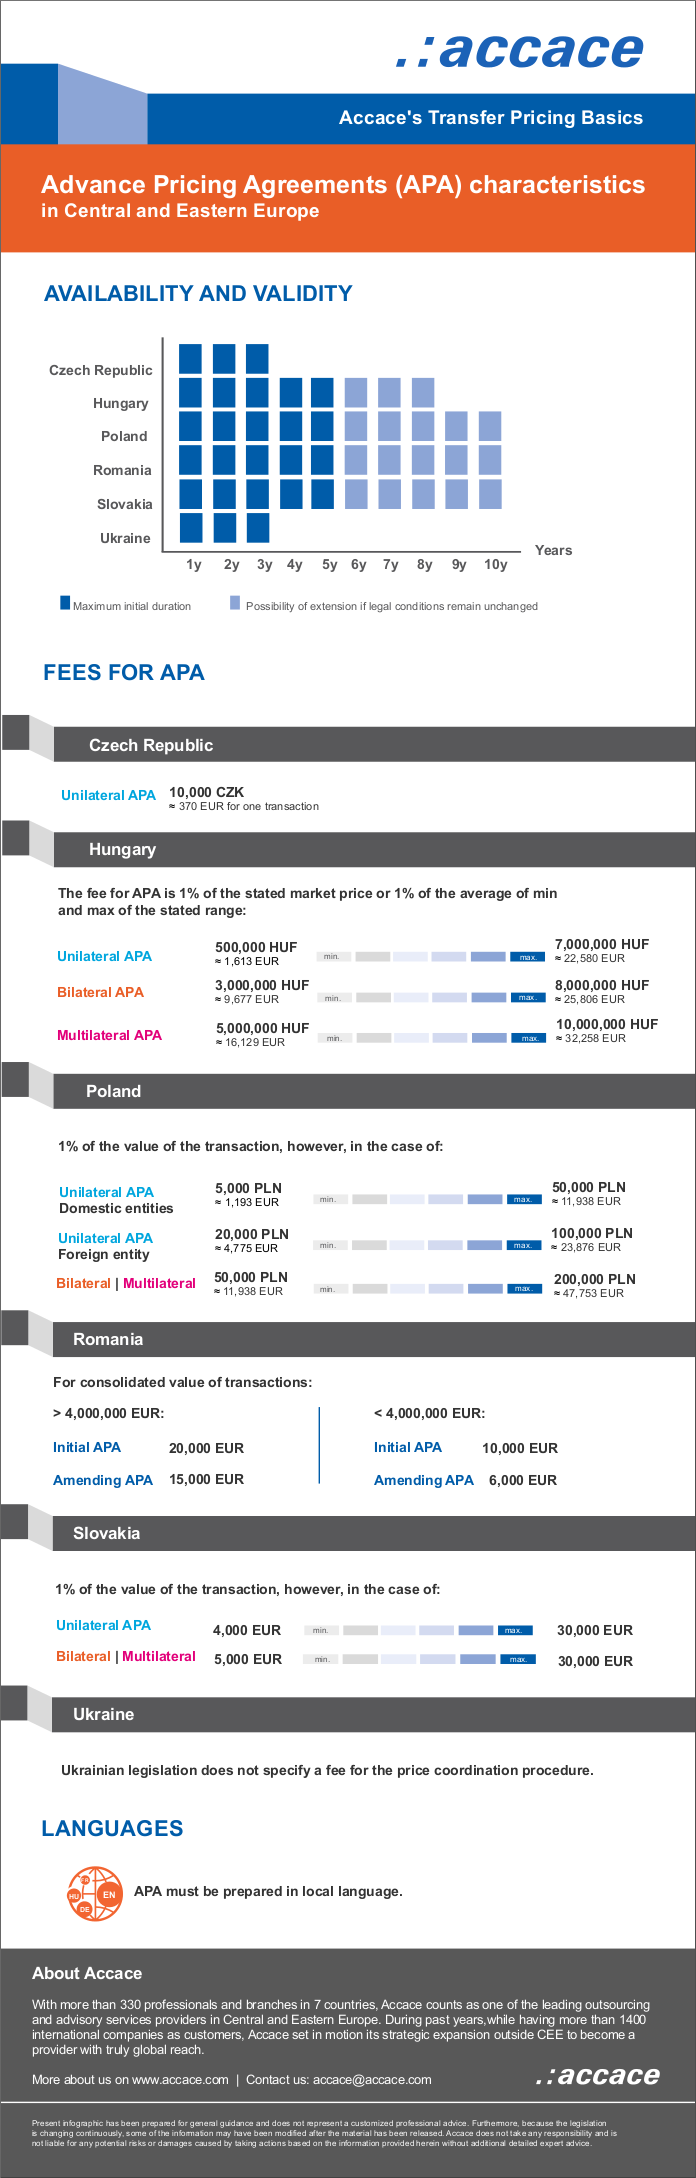 Advance Pricing Agreements characteristics in Central and Eastern Europe | Infographic